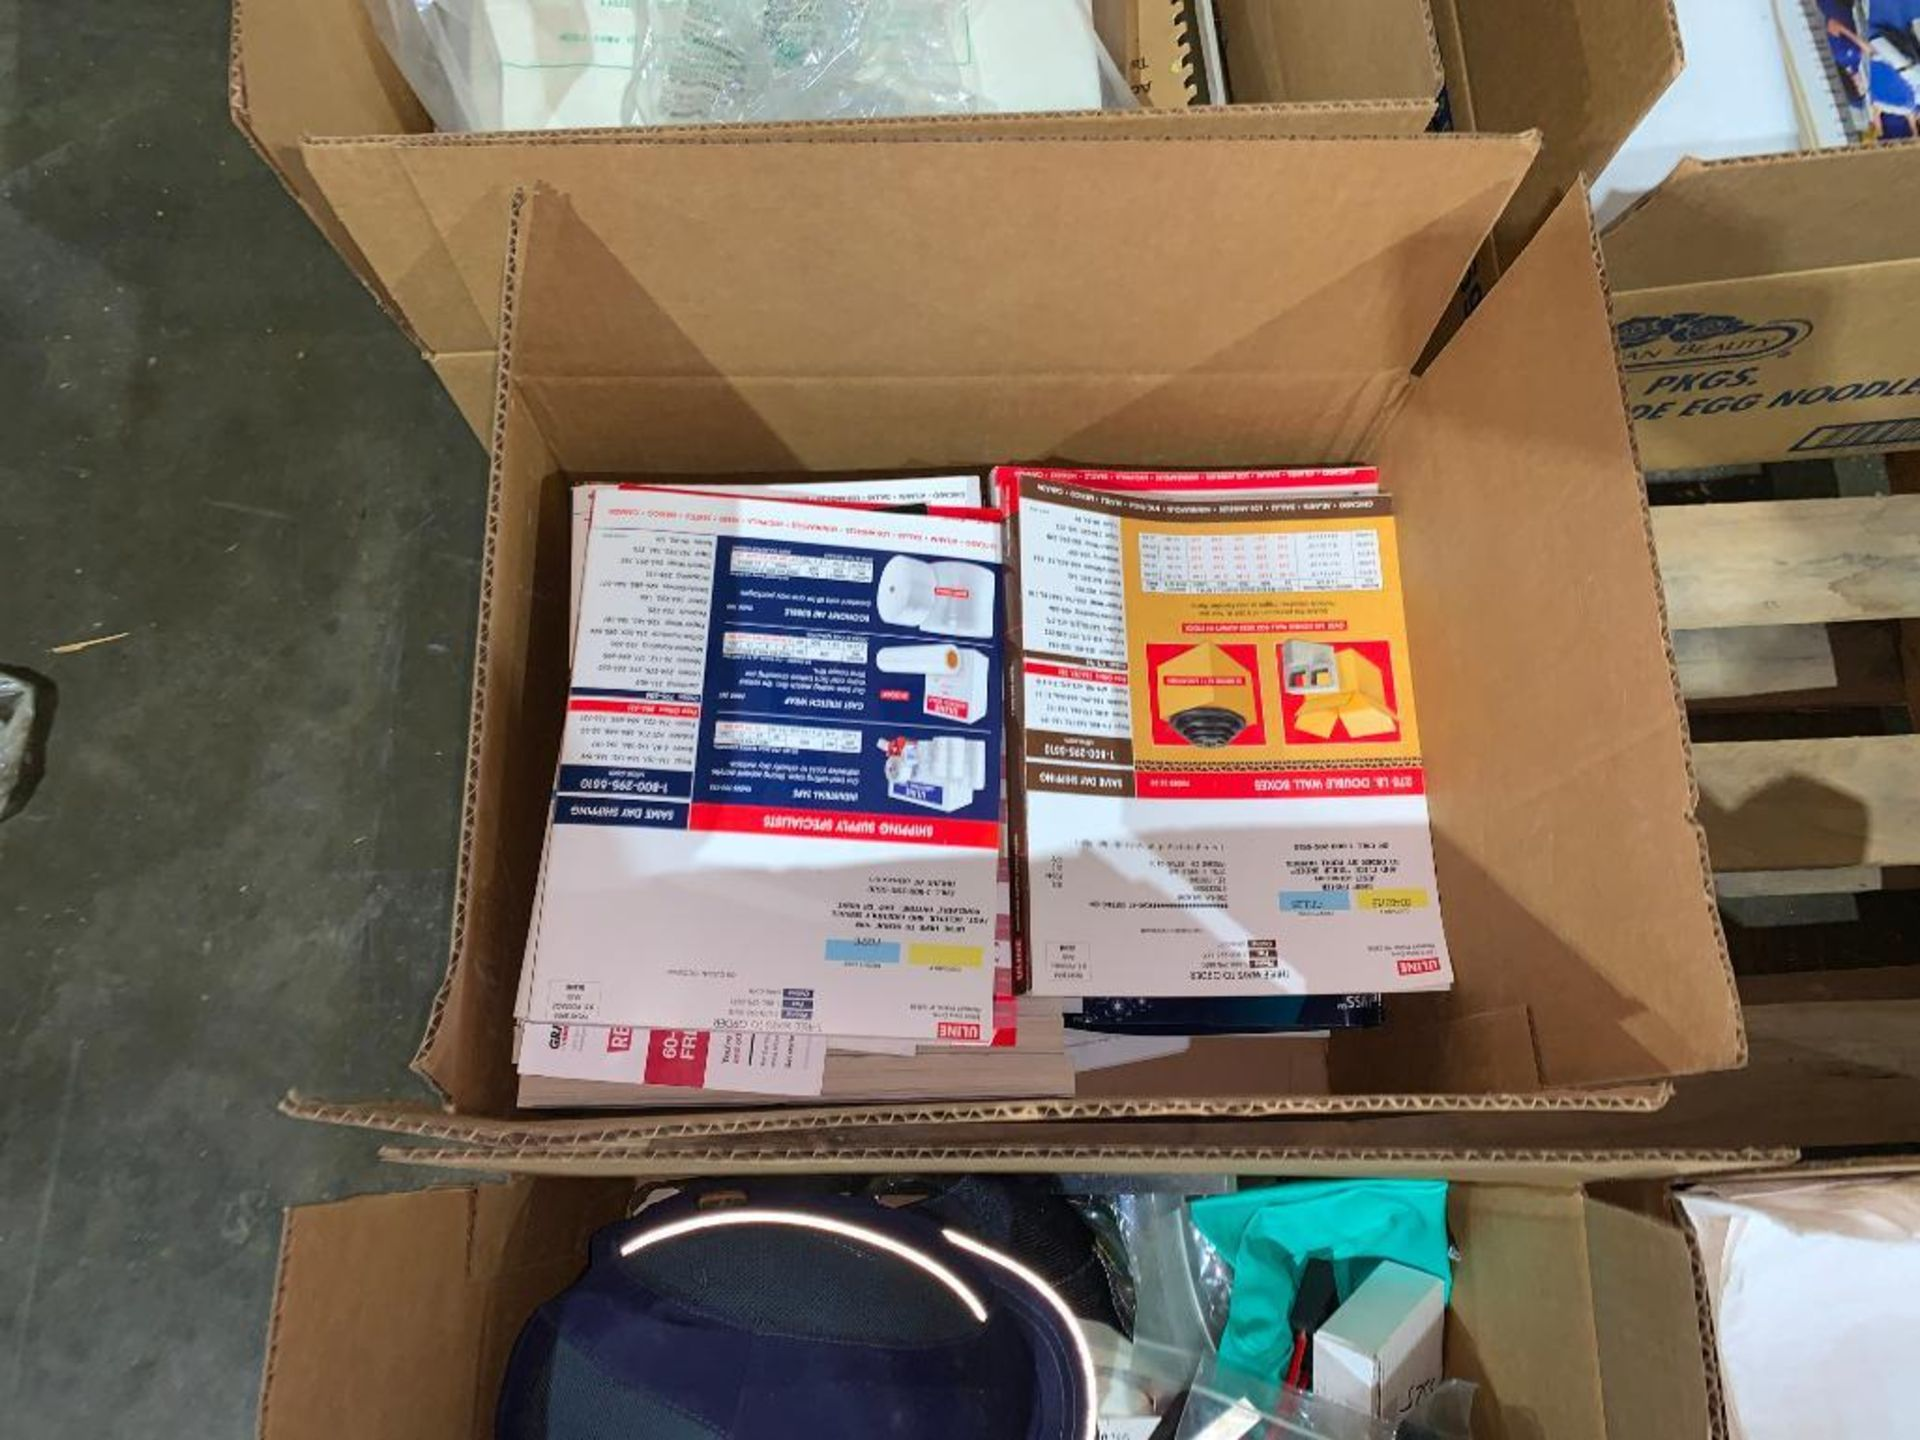 safety equipment, absorbent pads, and manuals - Image 5 of 6